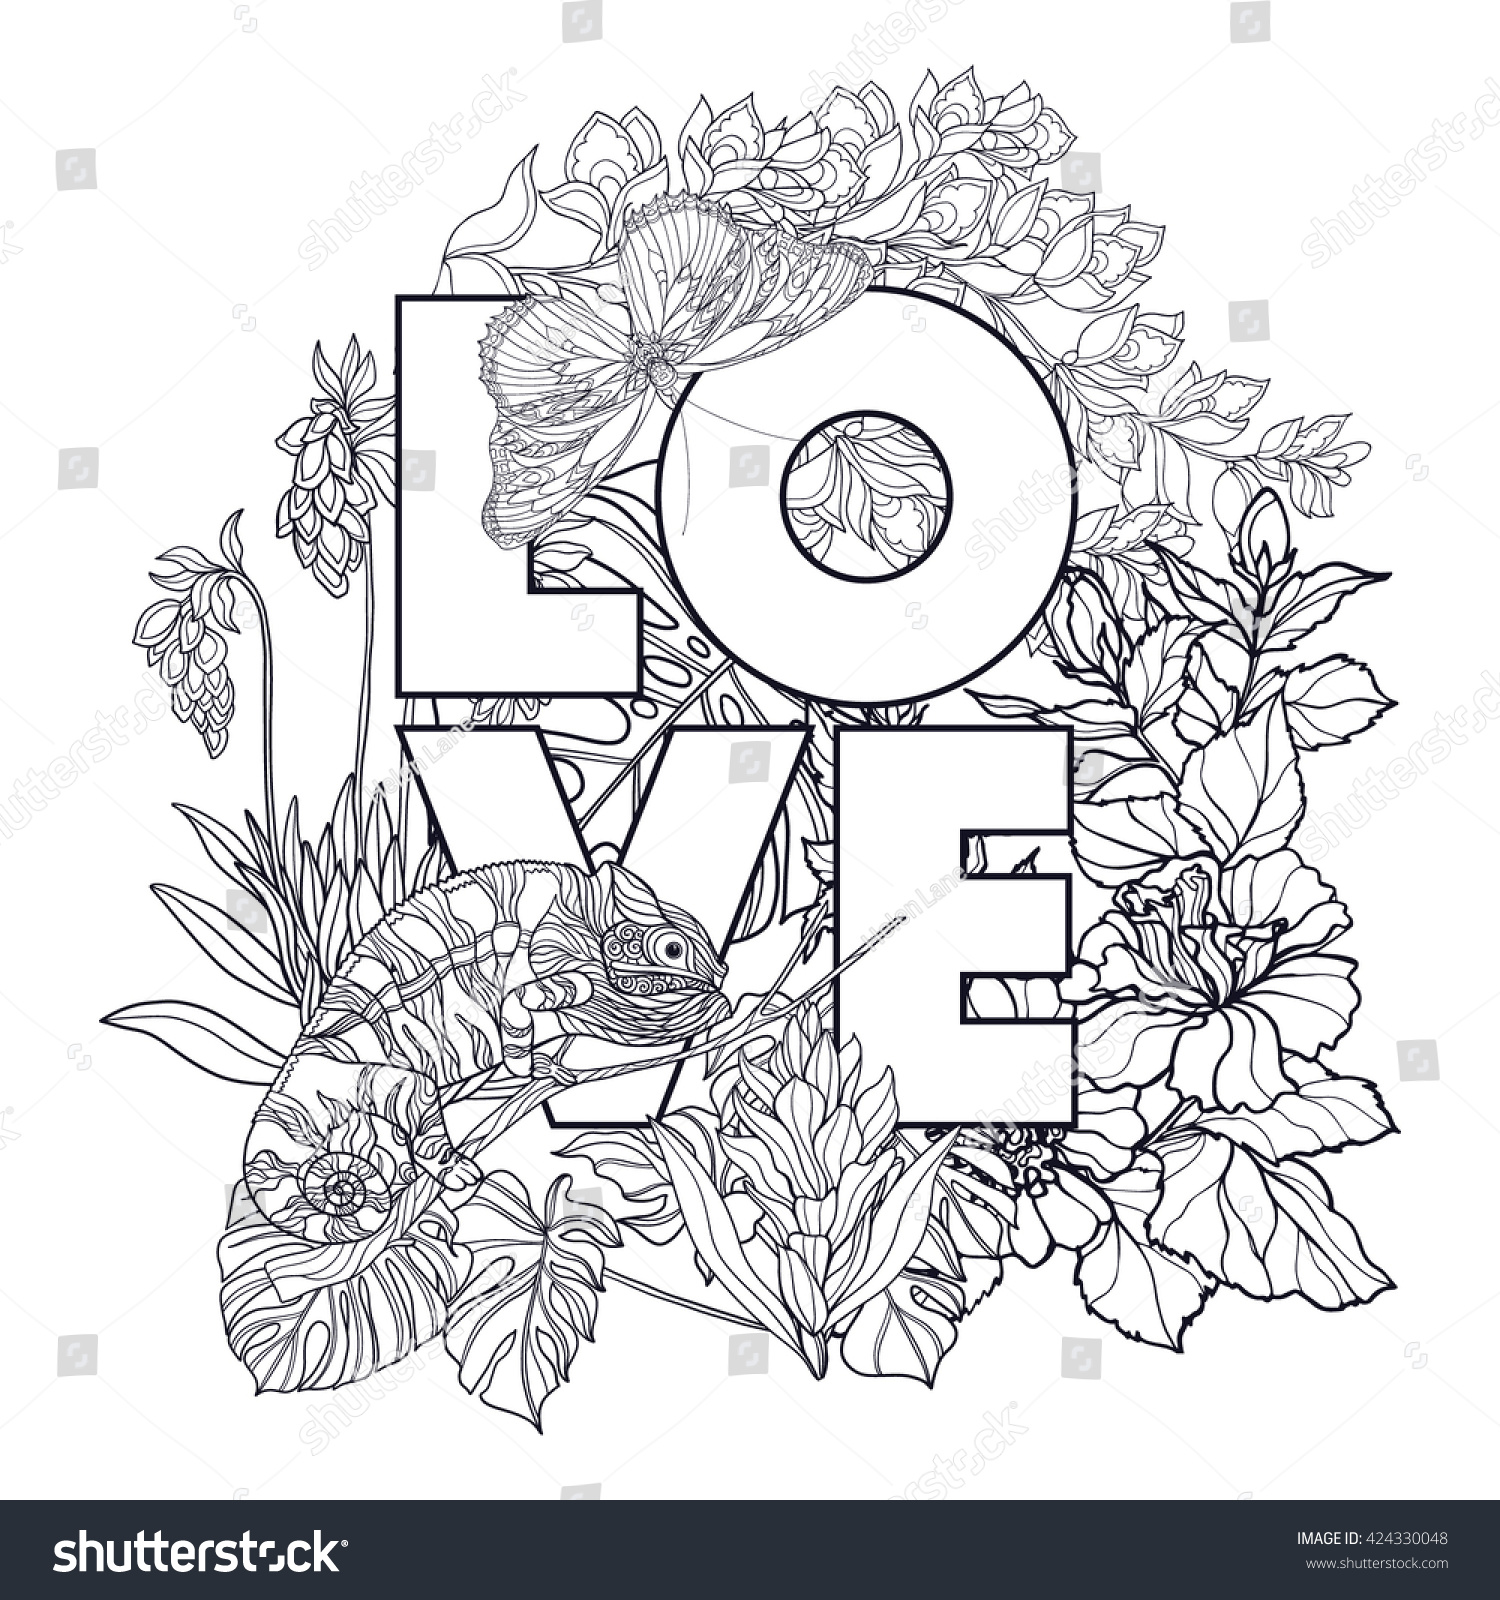 Adult Coloring Book Coloring Page Word Stock Vector (Royalty Free ...